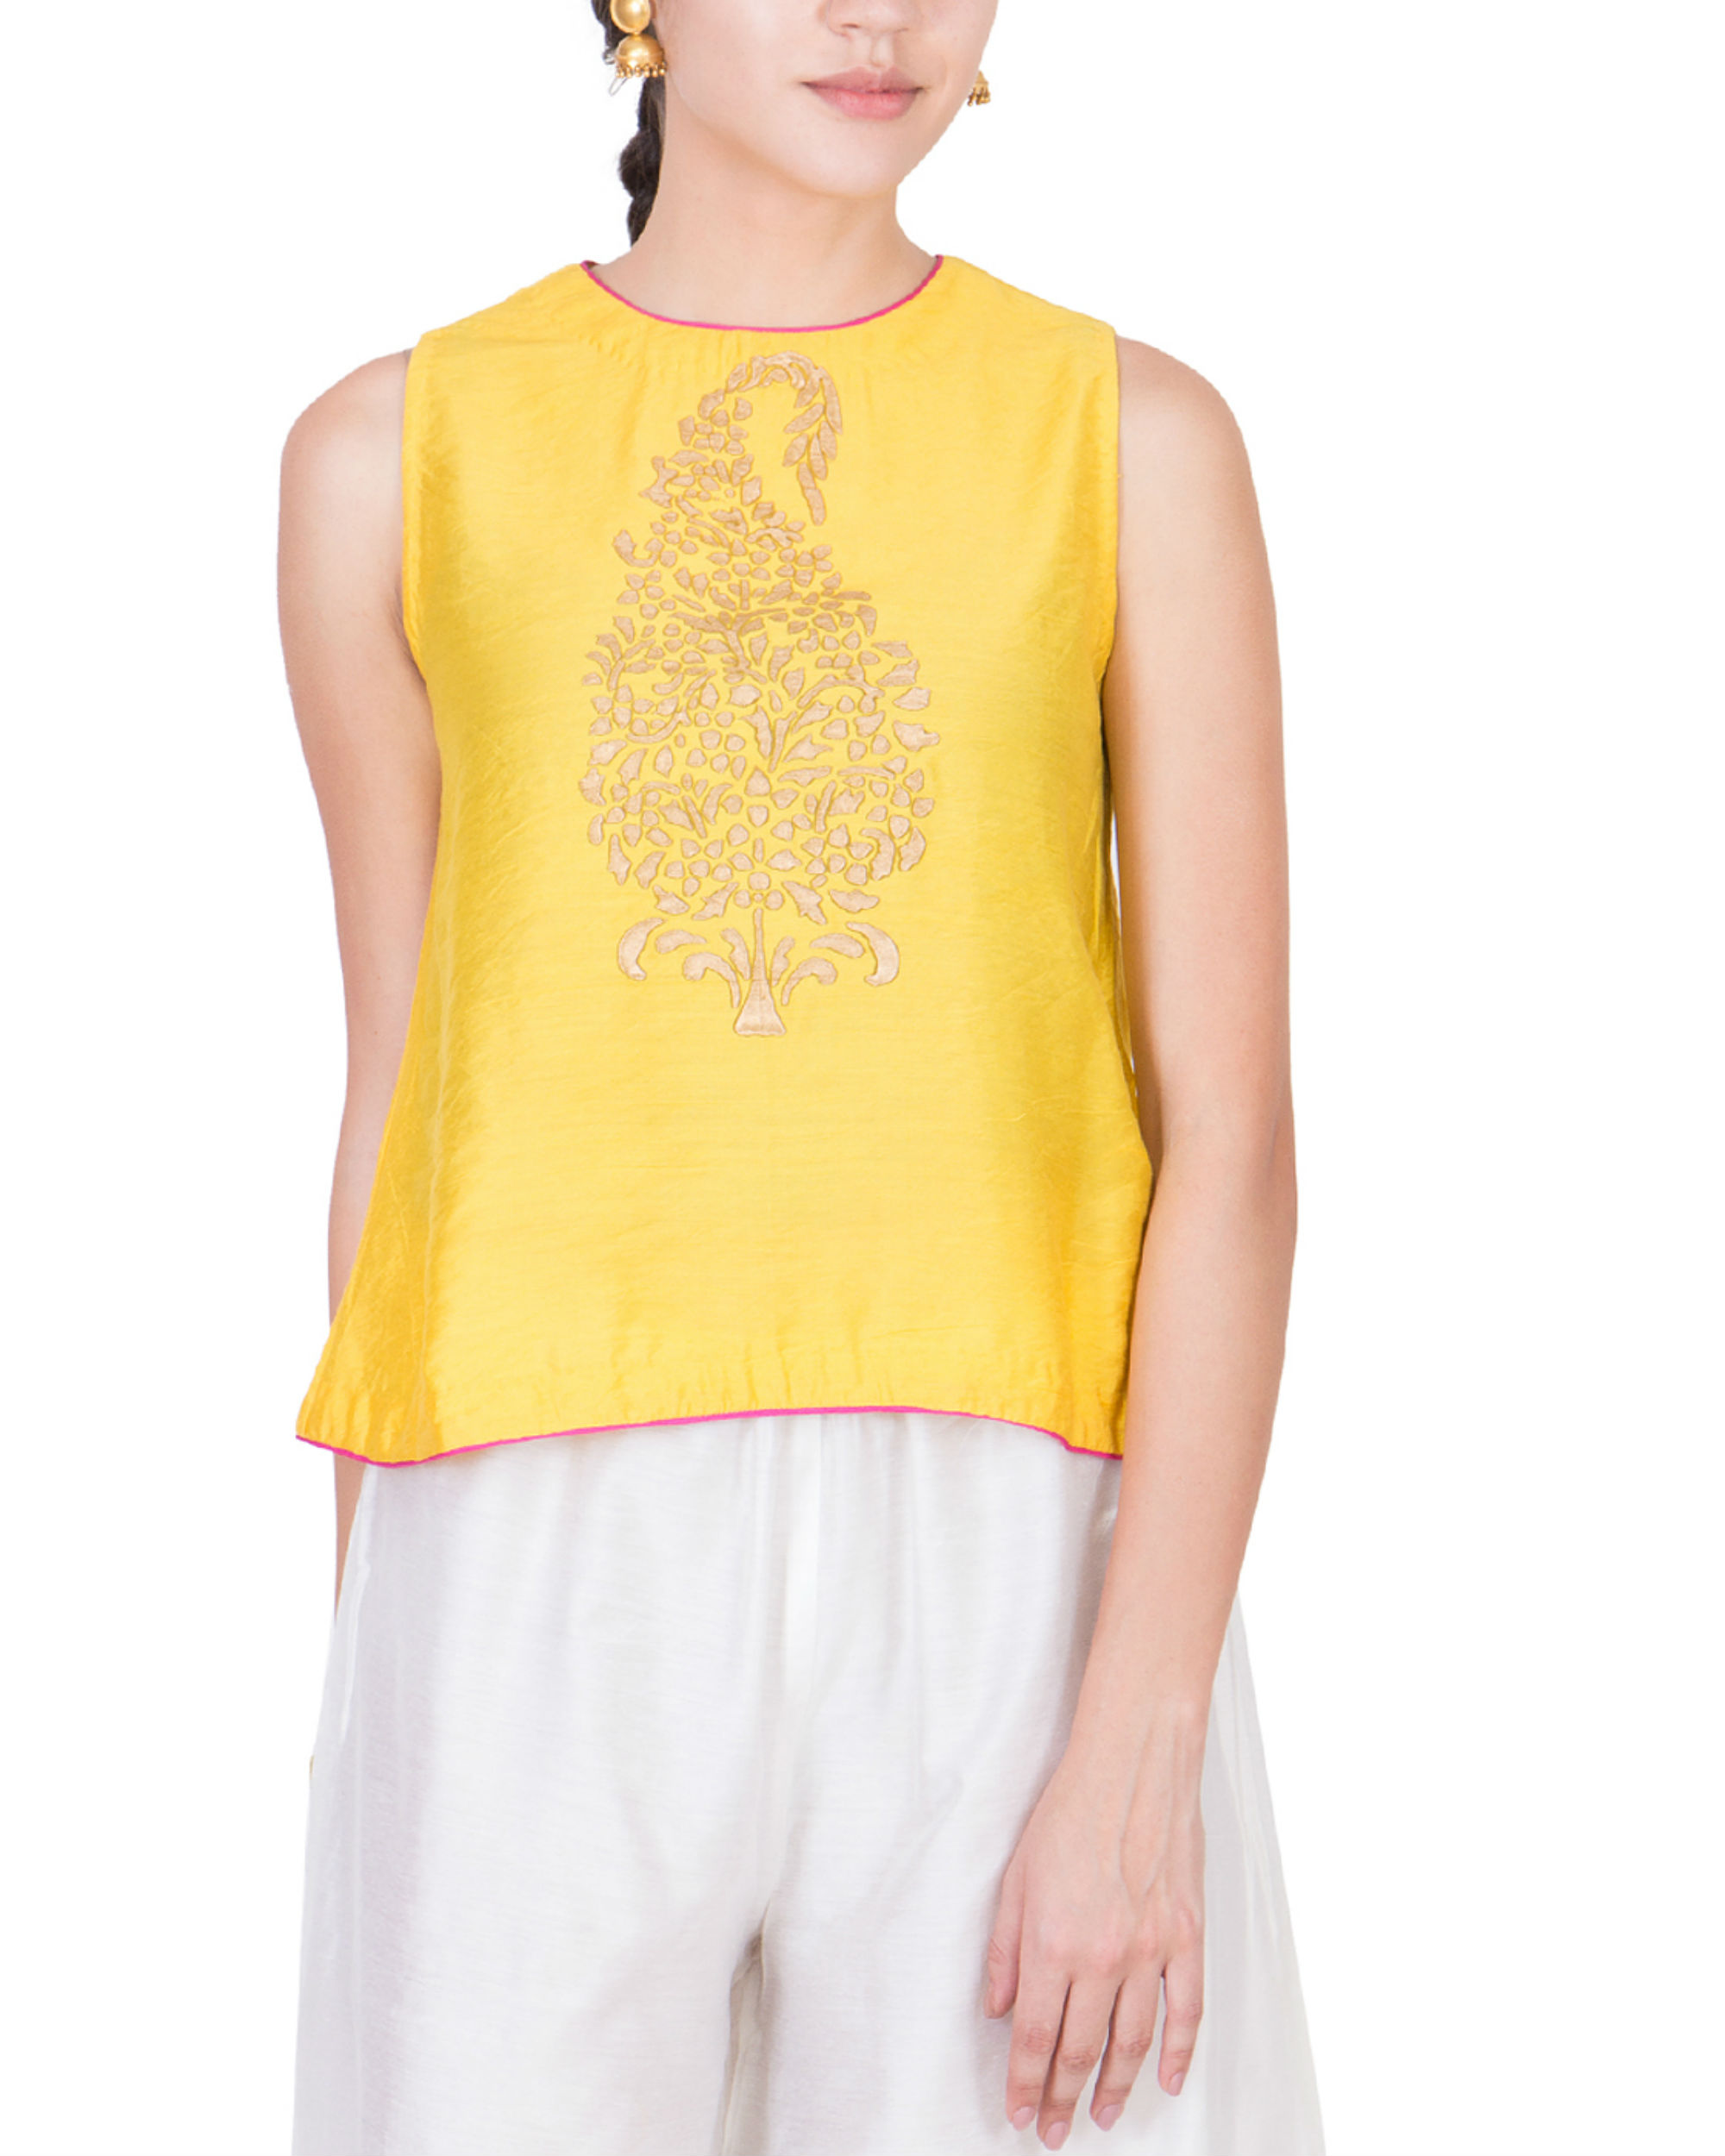 Yellow block printed top